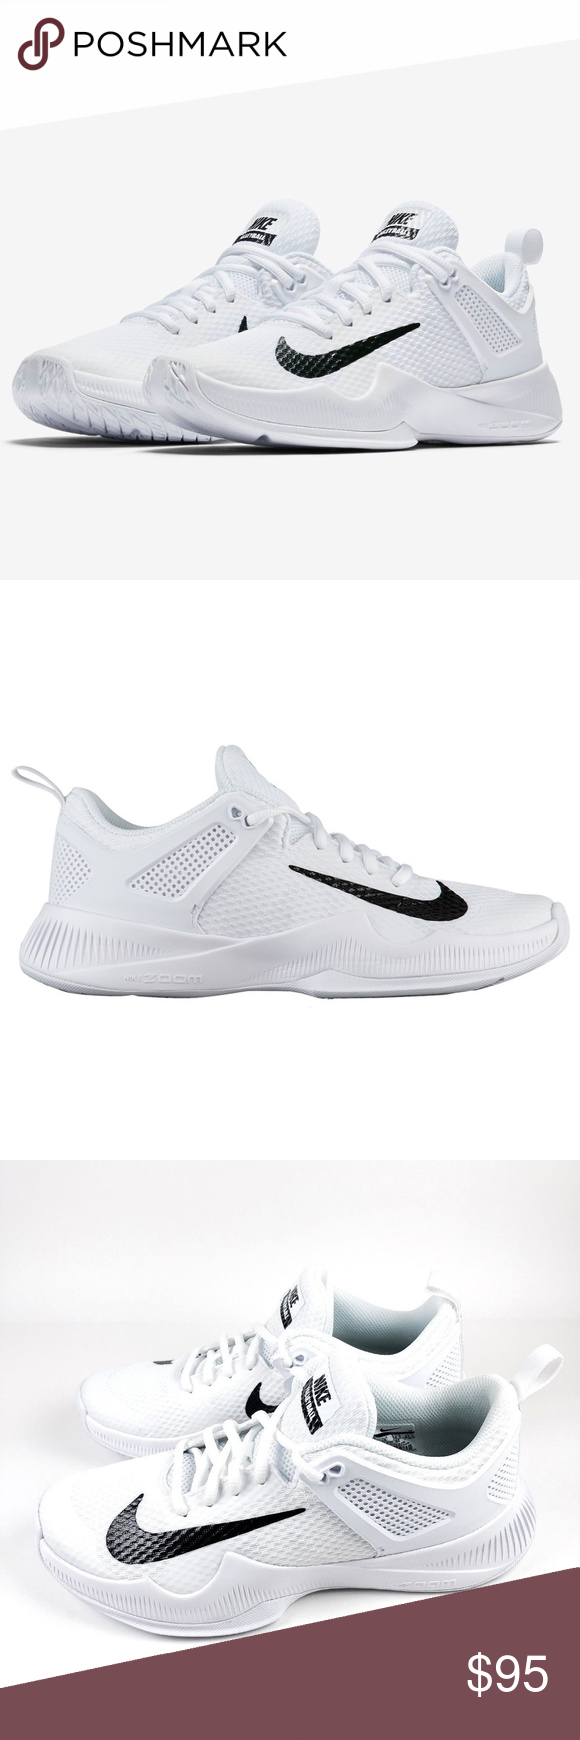 fbcf66a1cf80f Nike Women s Air Zoom Hyperace Volleyball Shoes NEW Nike Women s Size 7.5 Air  Zoom Hyperace White Black Volleyball Shoes 902367-100 NWOB Nike Shoes  Athletic ...